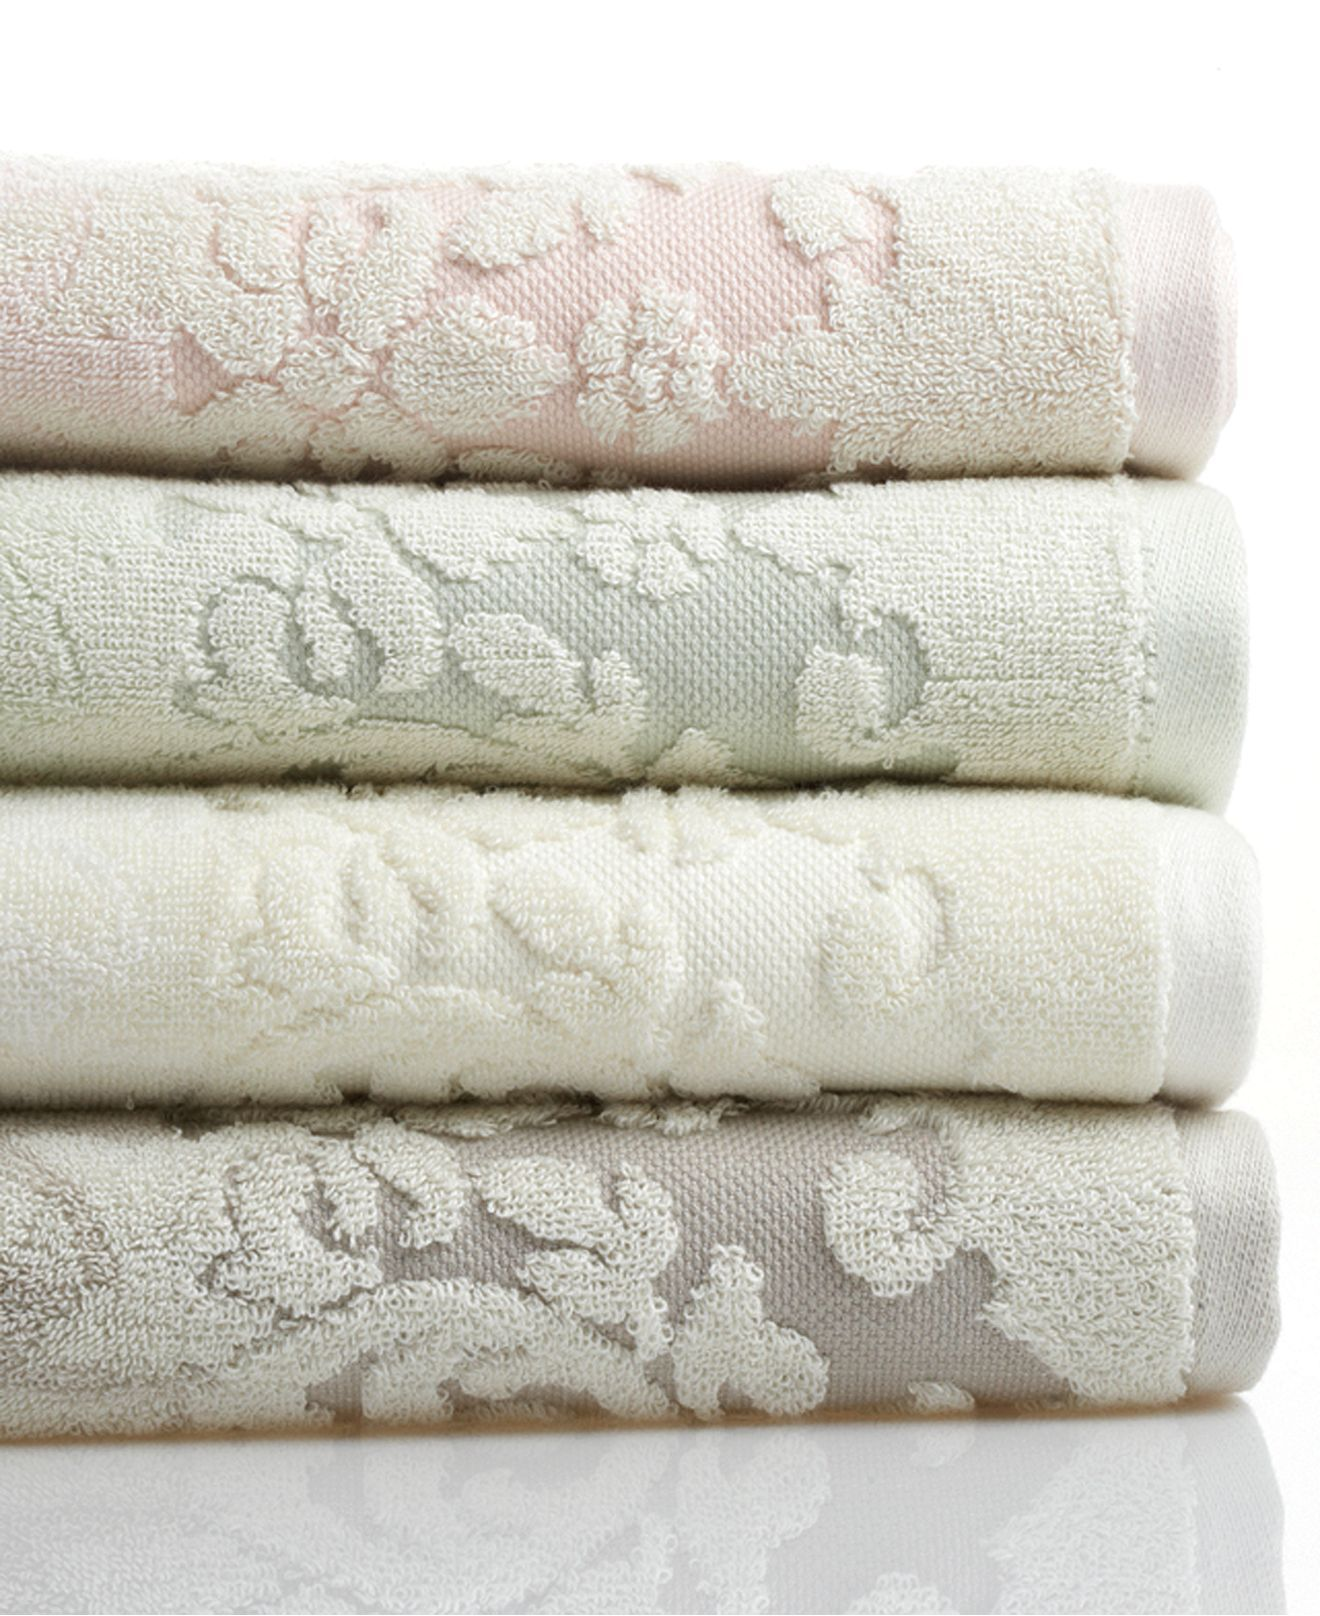 Macys Bath Towels Magnificent Martha Stewart Collection Bath Towels Imperial Damask Collection Decorating Design